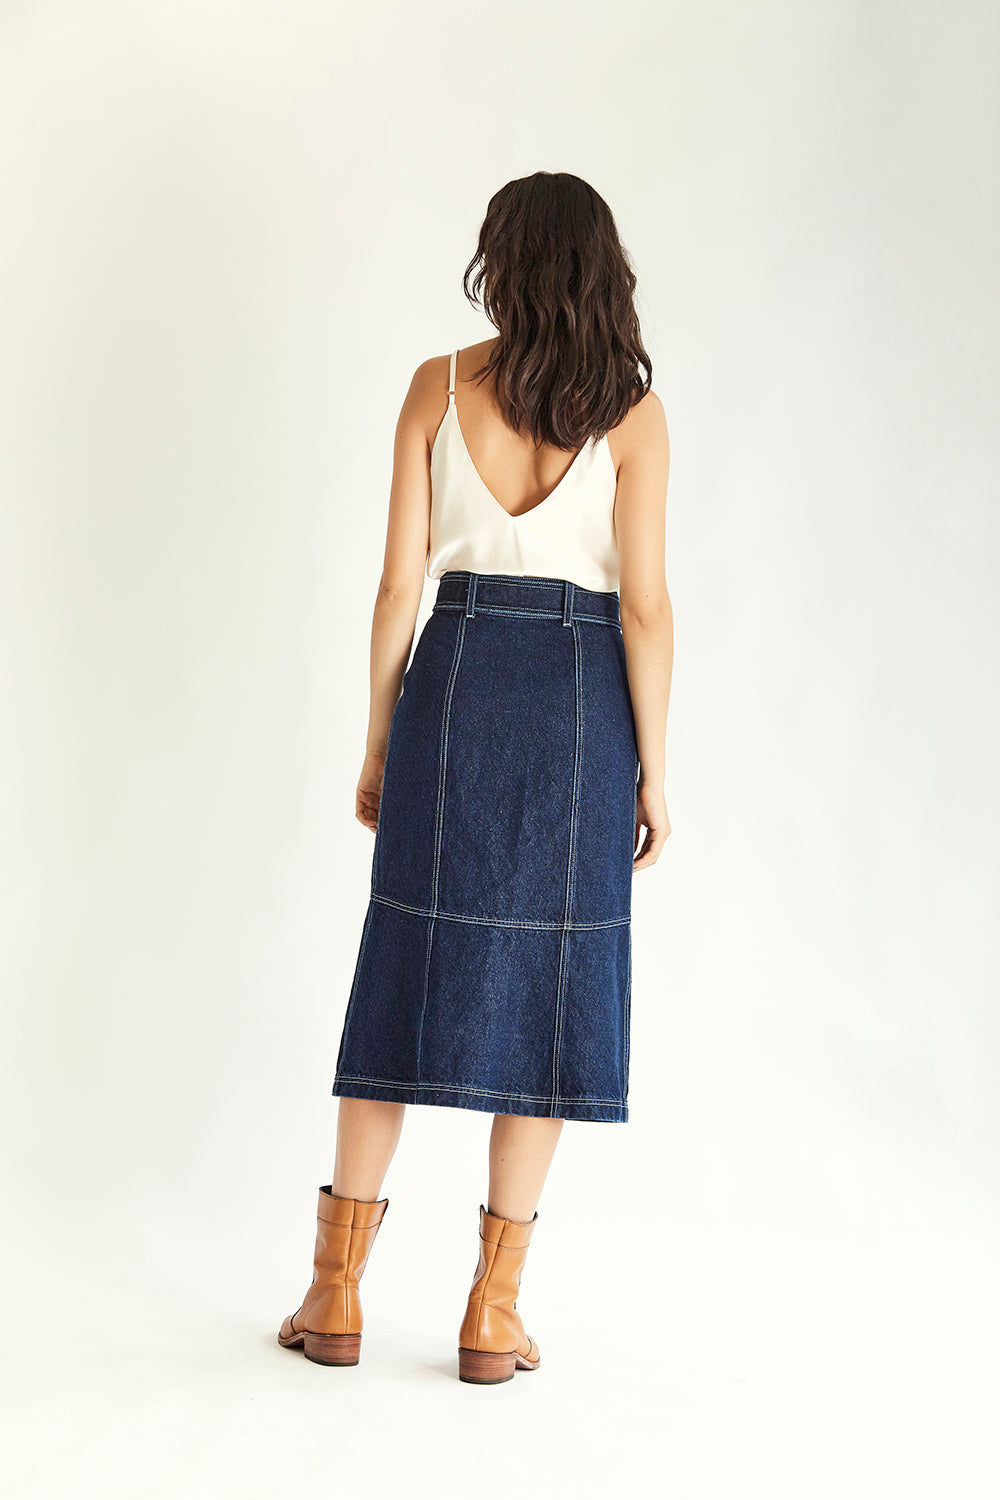 Clarke Denim Skirt - Indigo - Wynn Hamlyn — Shop